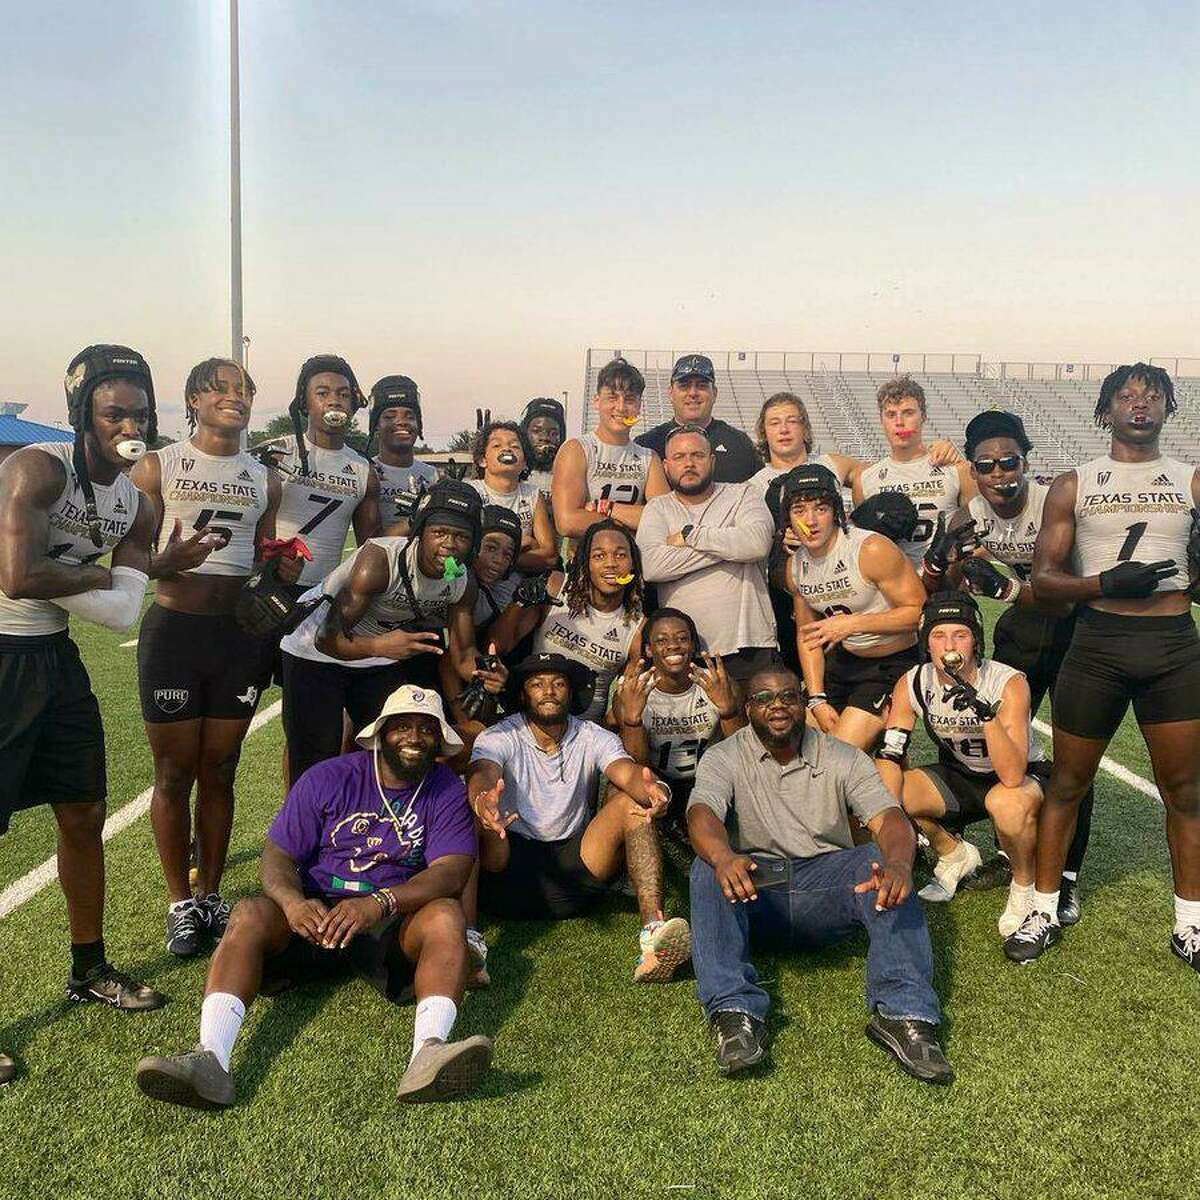 The Foster Falcons qualified for the 7-on-7 football state tournament with four victories at a qualifying tournament June 11 at Dickinson High School. The Falcons earned their fifth consecutive trip to state.